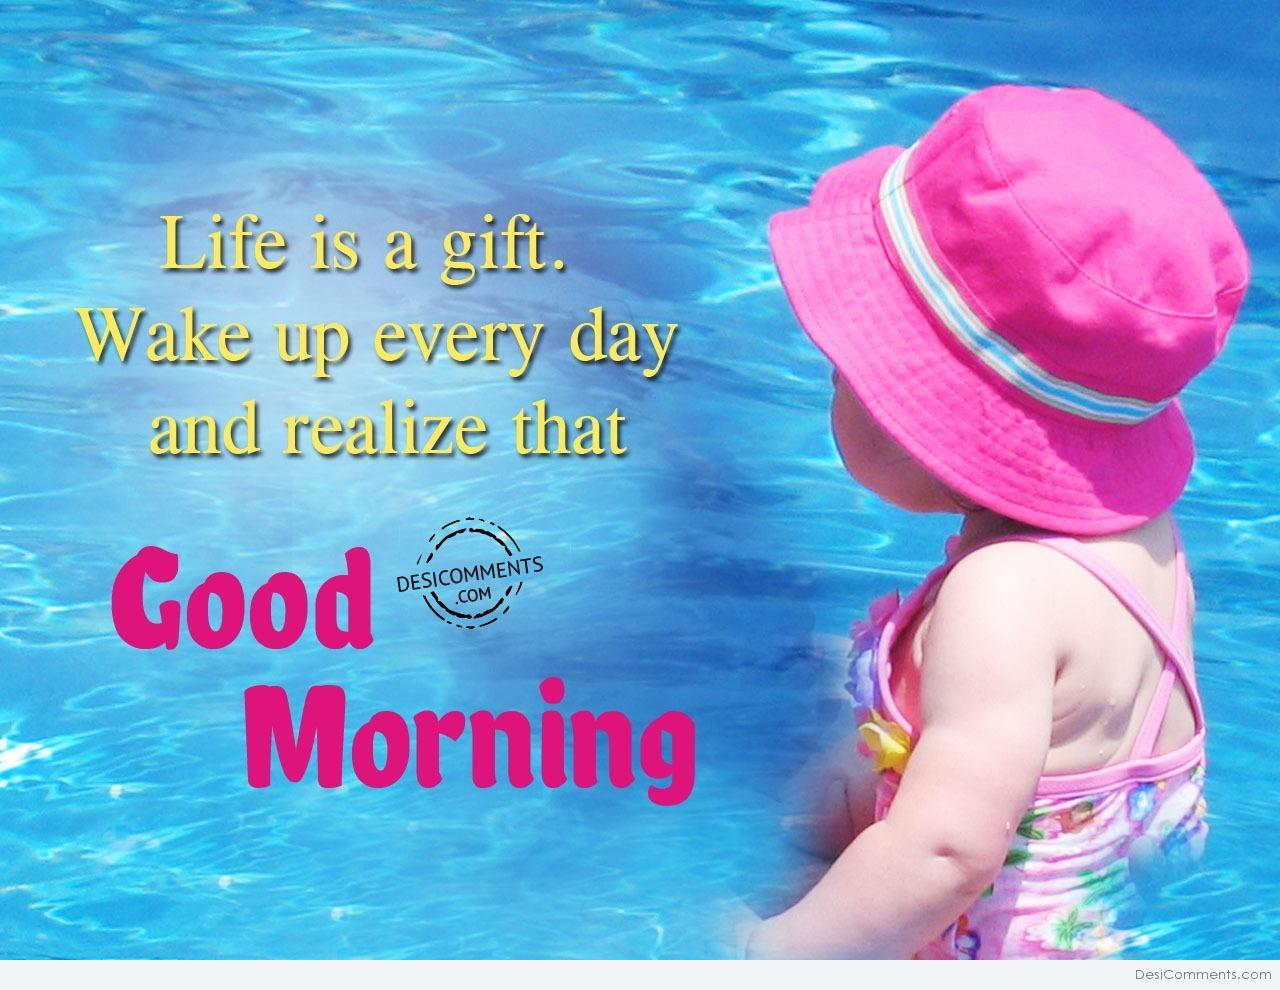 Life is a gift good morning desicomments life is a gift good morning negle